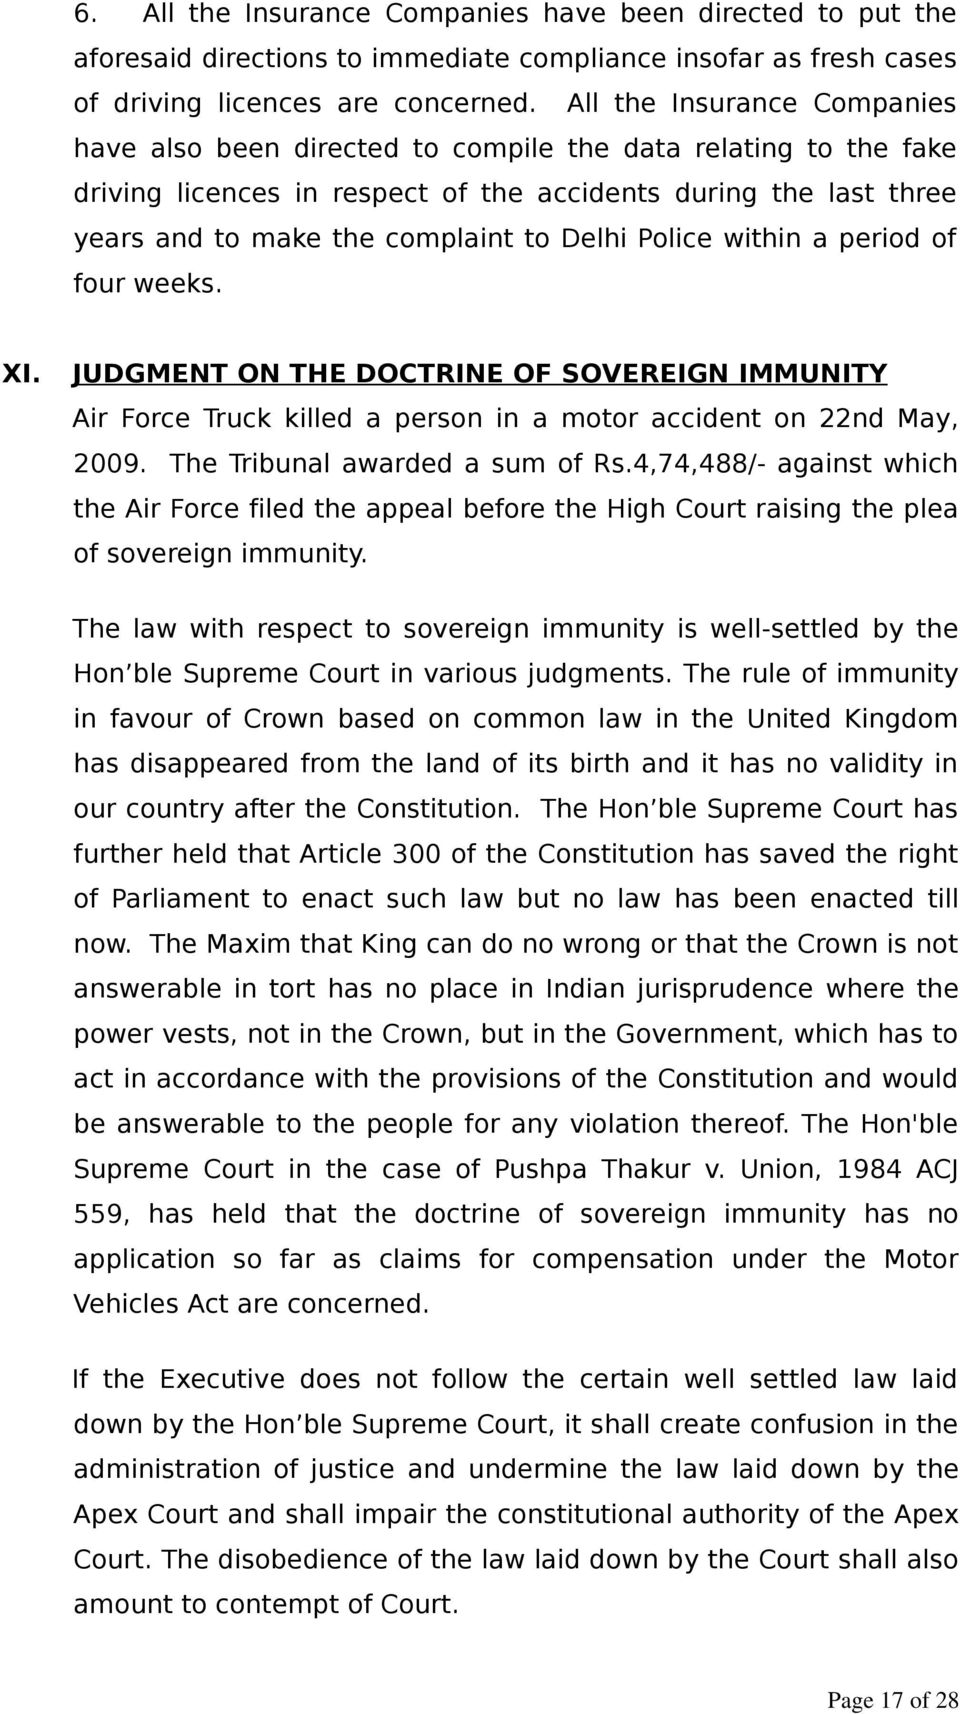 Delhi Police within a period of four weeks. XI. JUDGMENT ON THE DOCTRINE OF SOVEREIGN IMMUNITY Air Force Truck killed a person in a motor accident on 22nd May, 2009. The Tribunal awarded a sum of Rs.